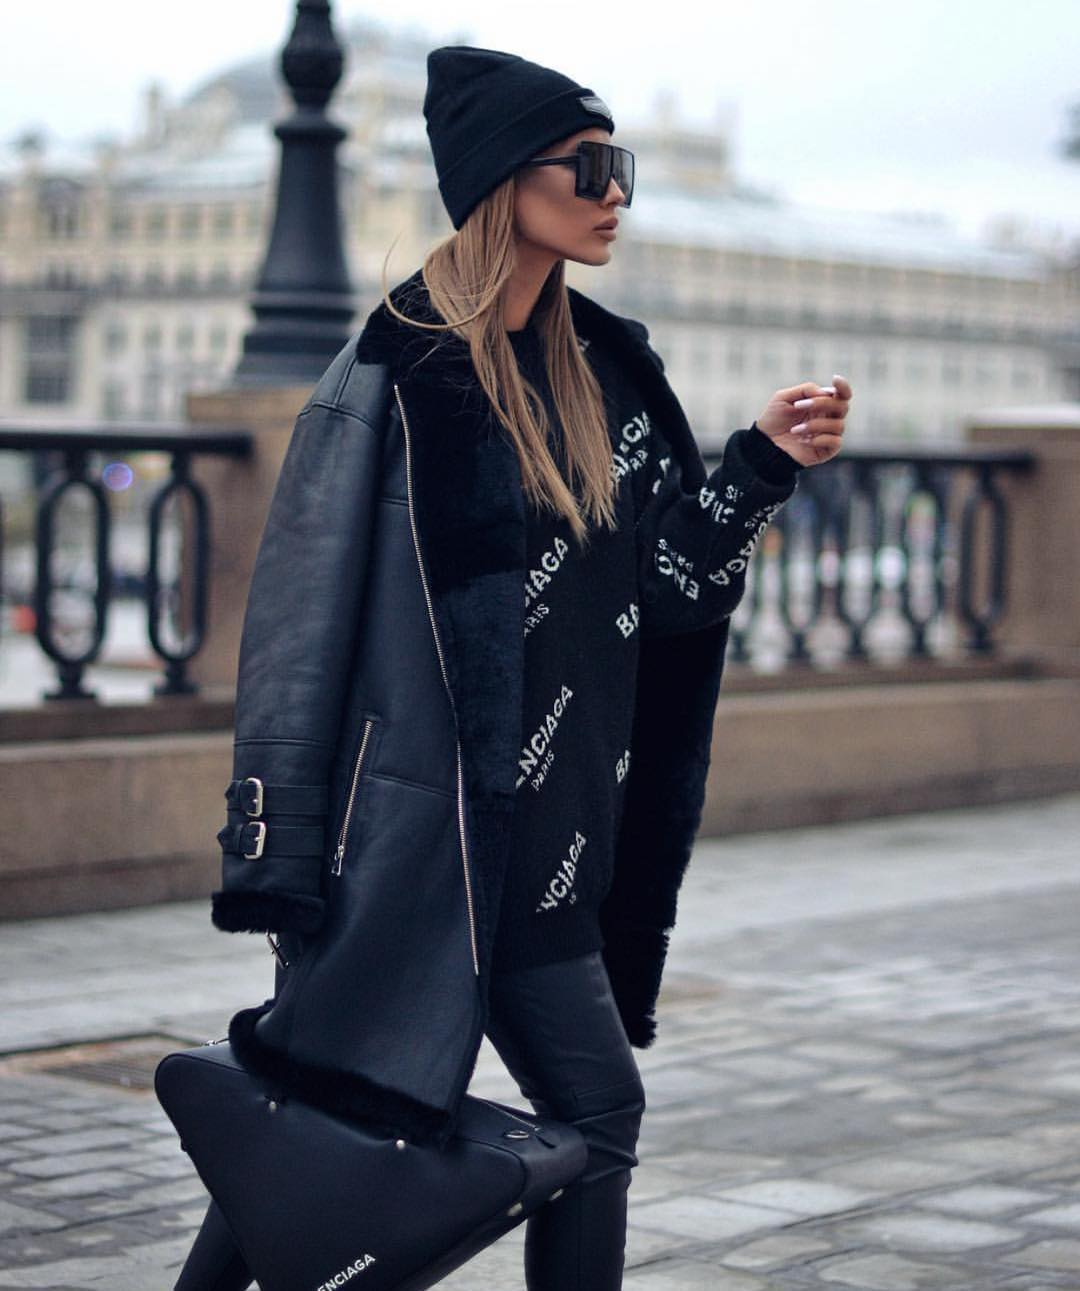 All Black Outfit Idea: Shearling Jacket, Oversized Sweater And Leather Pants 2019